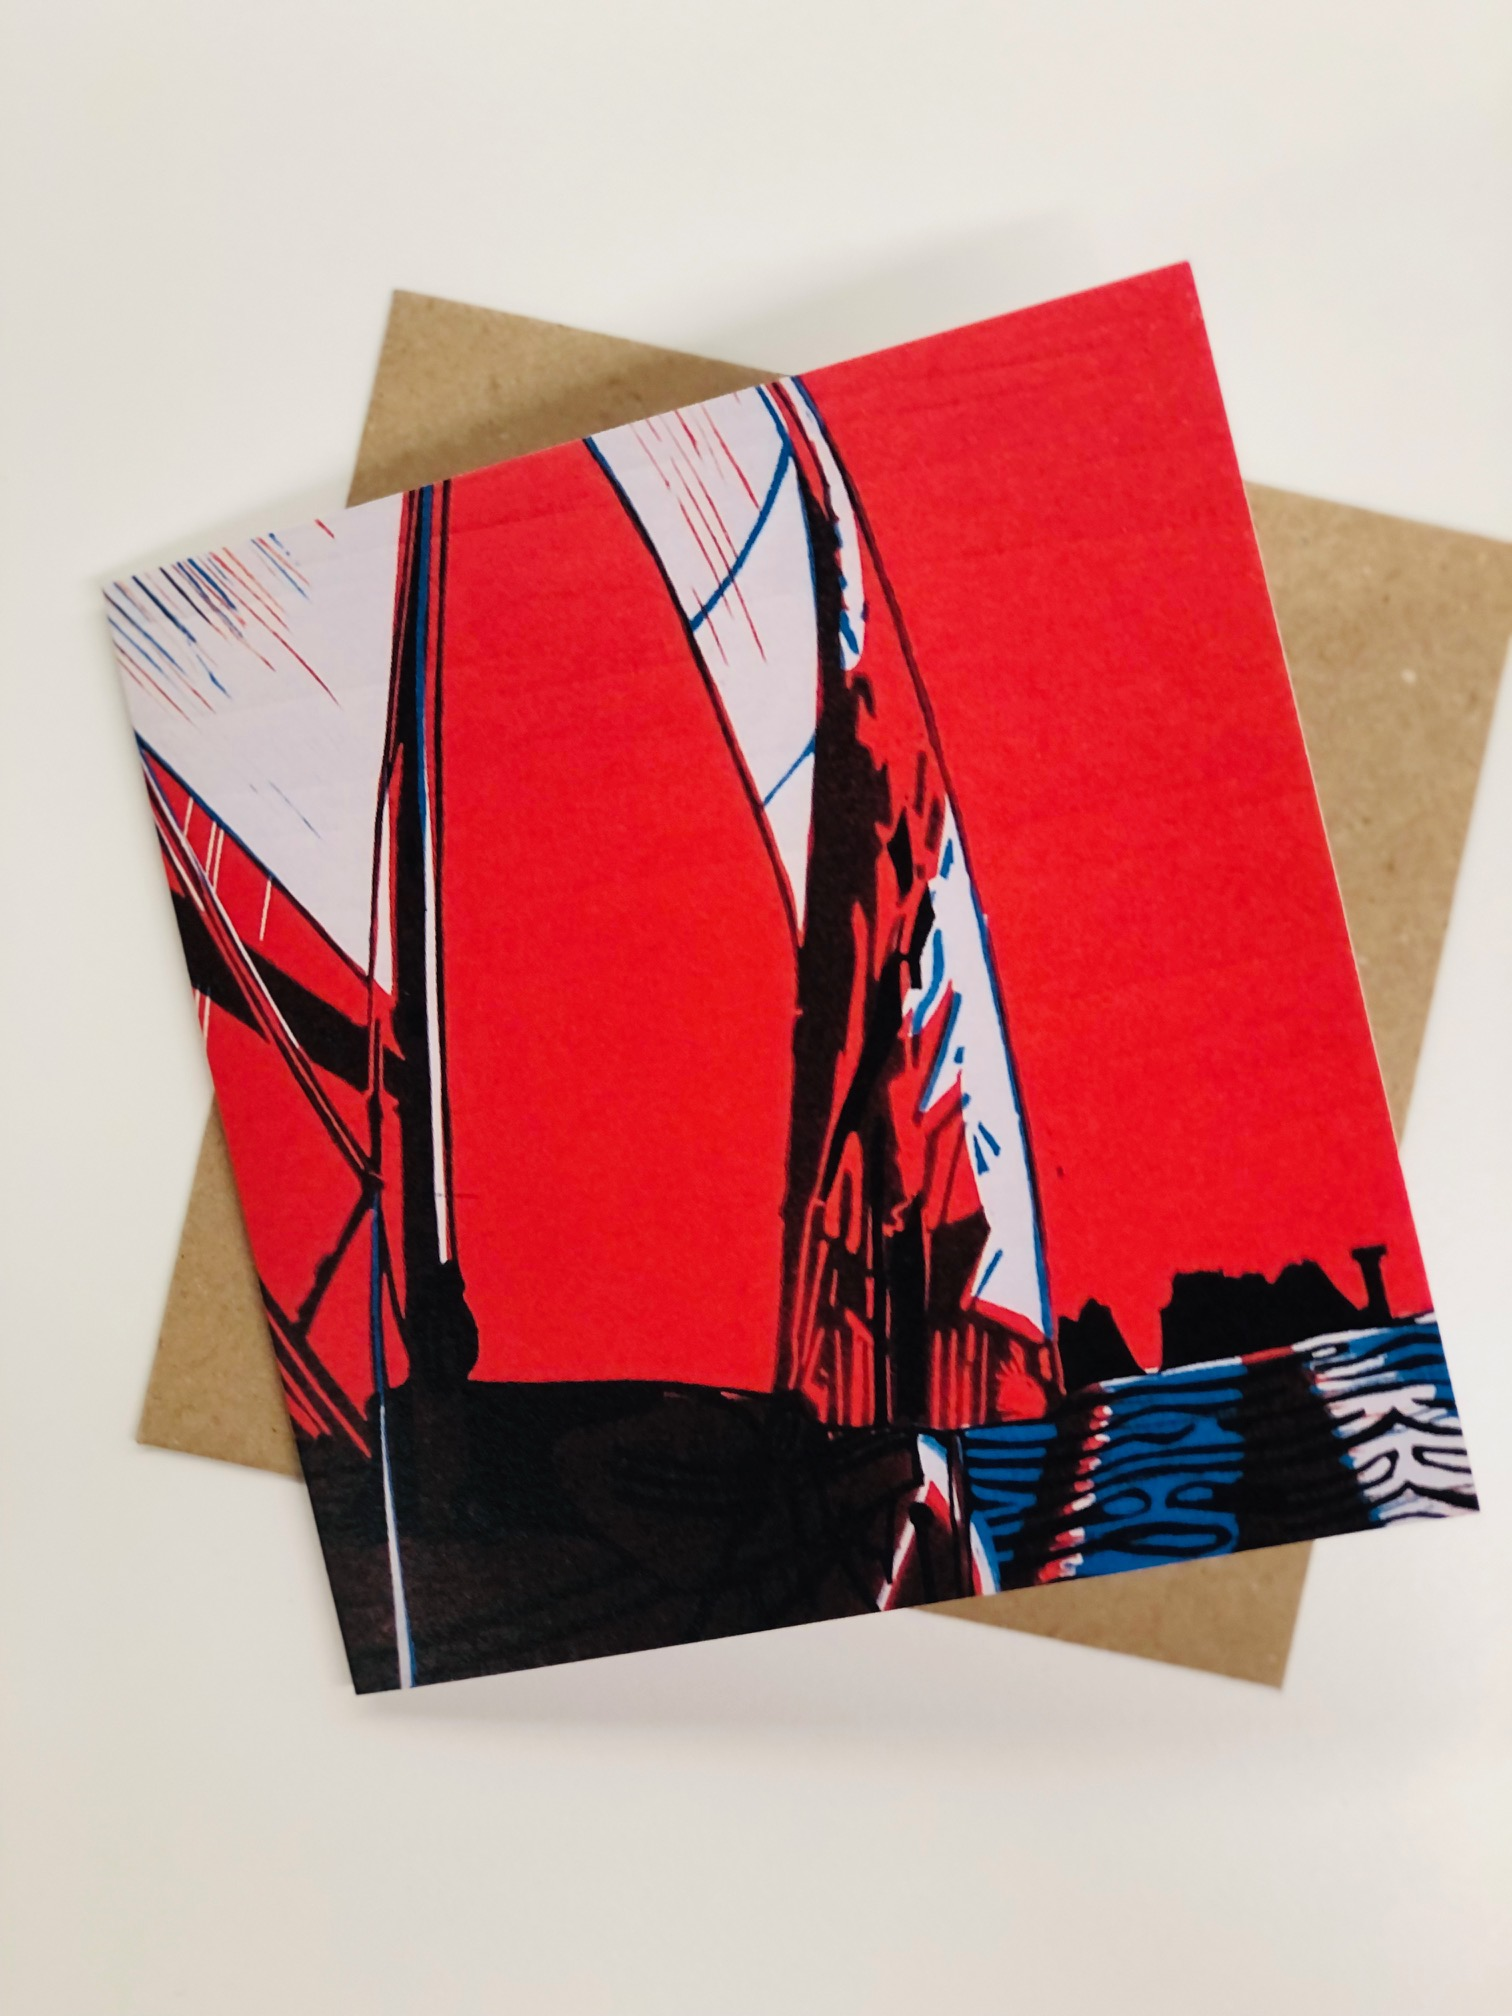 'Sailing to the Isle of Wight' Greetings Card by Aylsa Williams